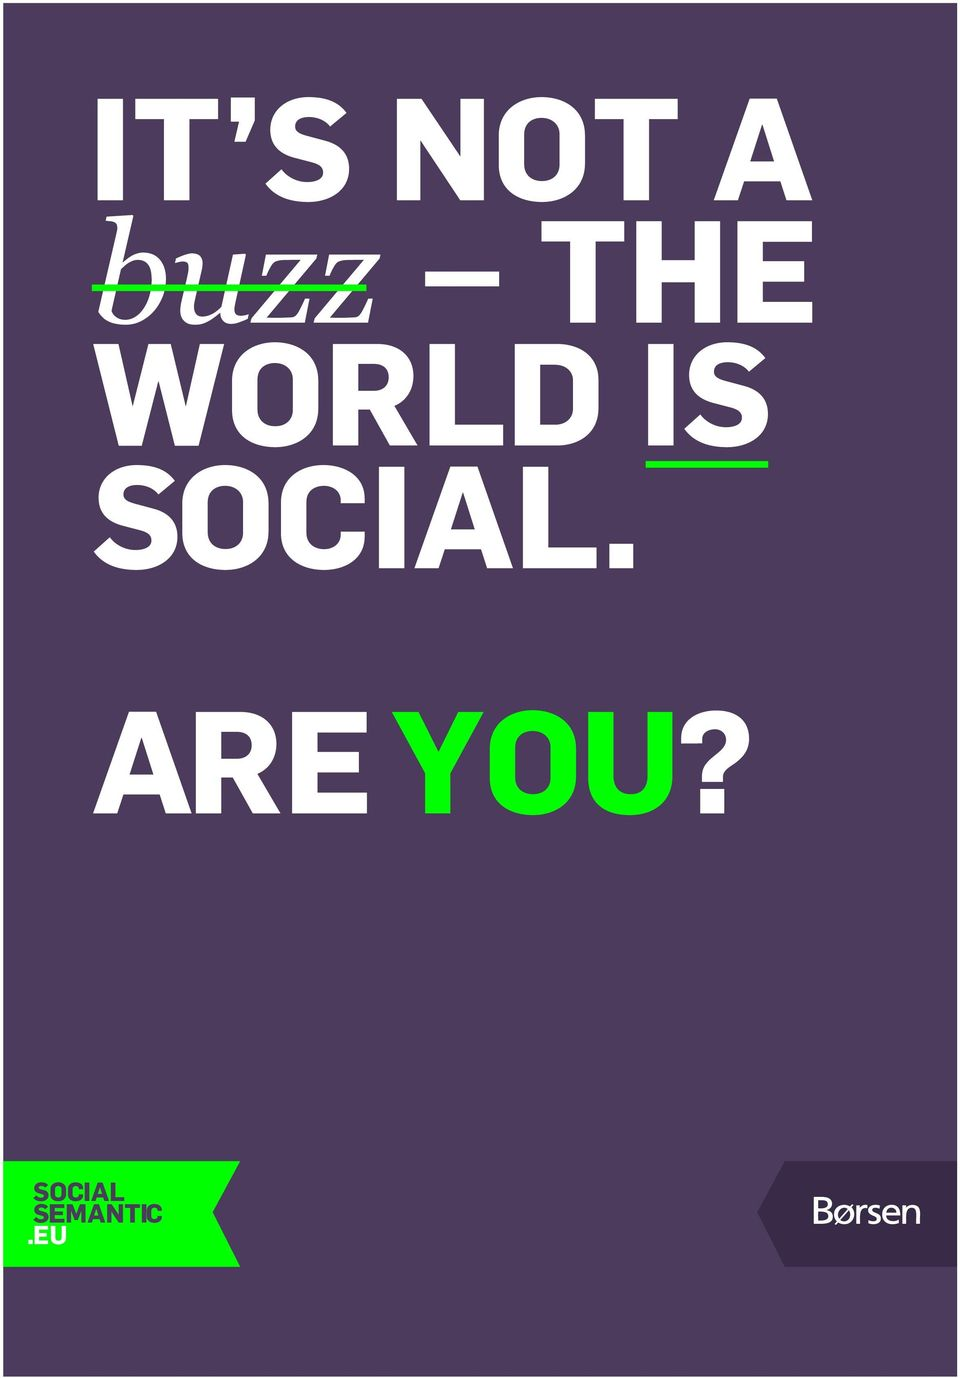 social. Are YoU?